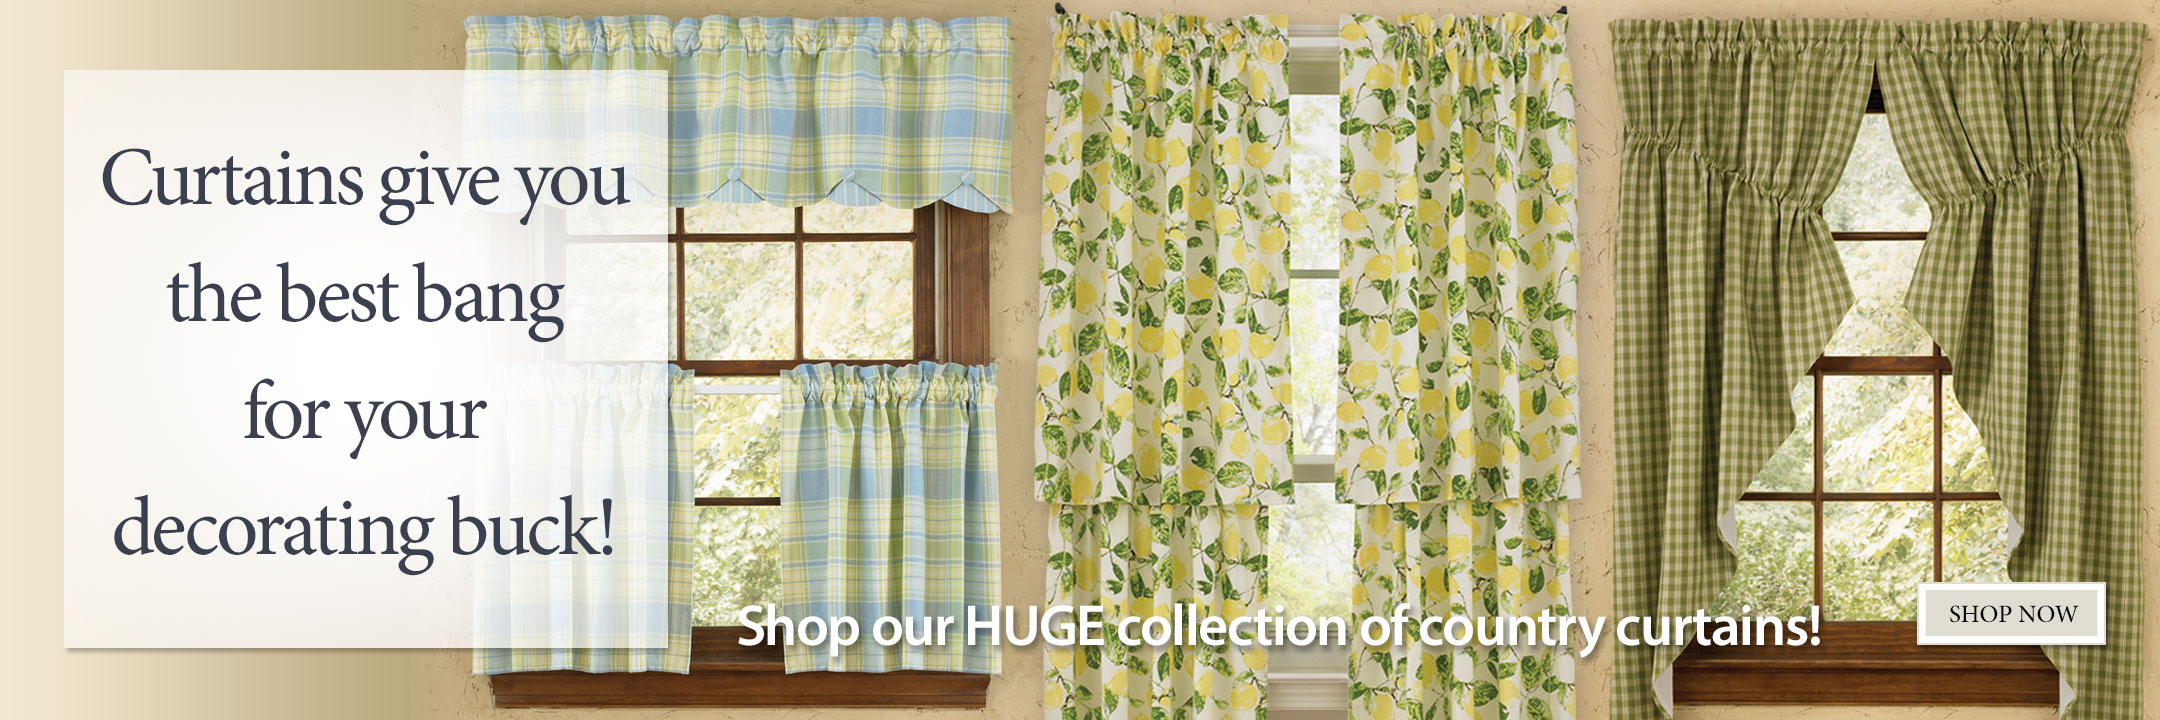 Shop our huge selection of country curtains!